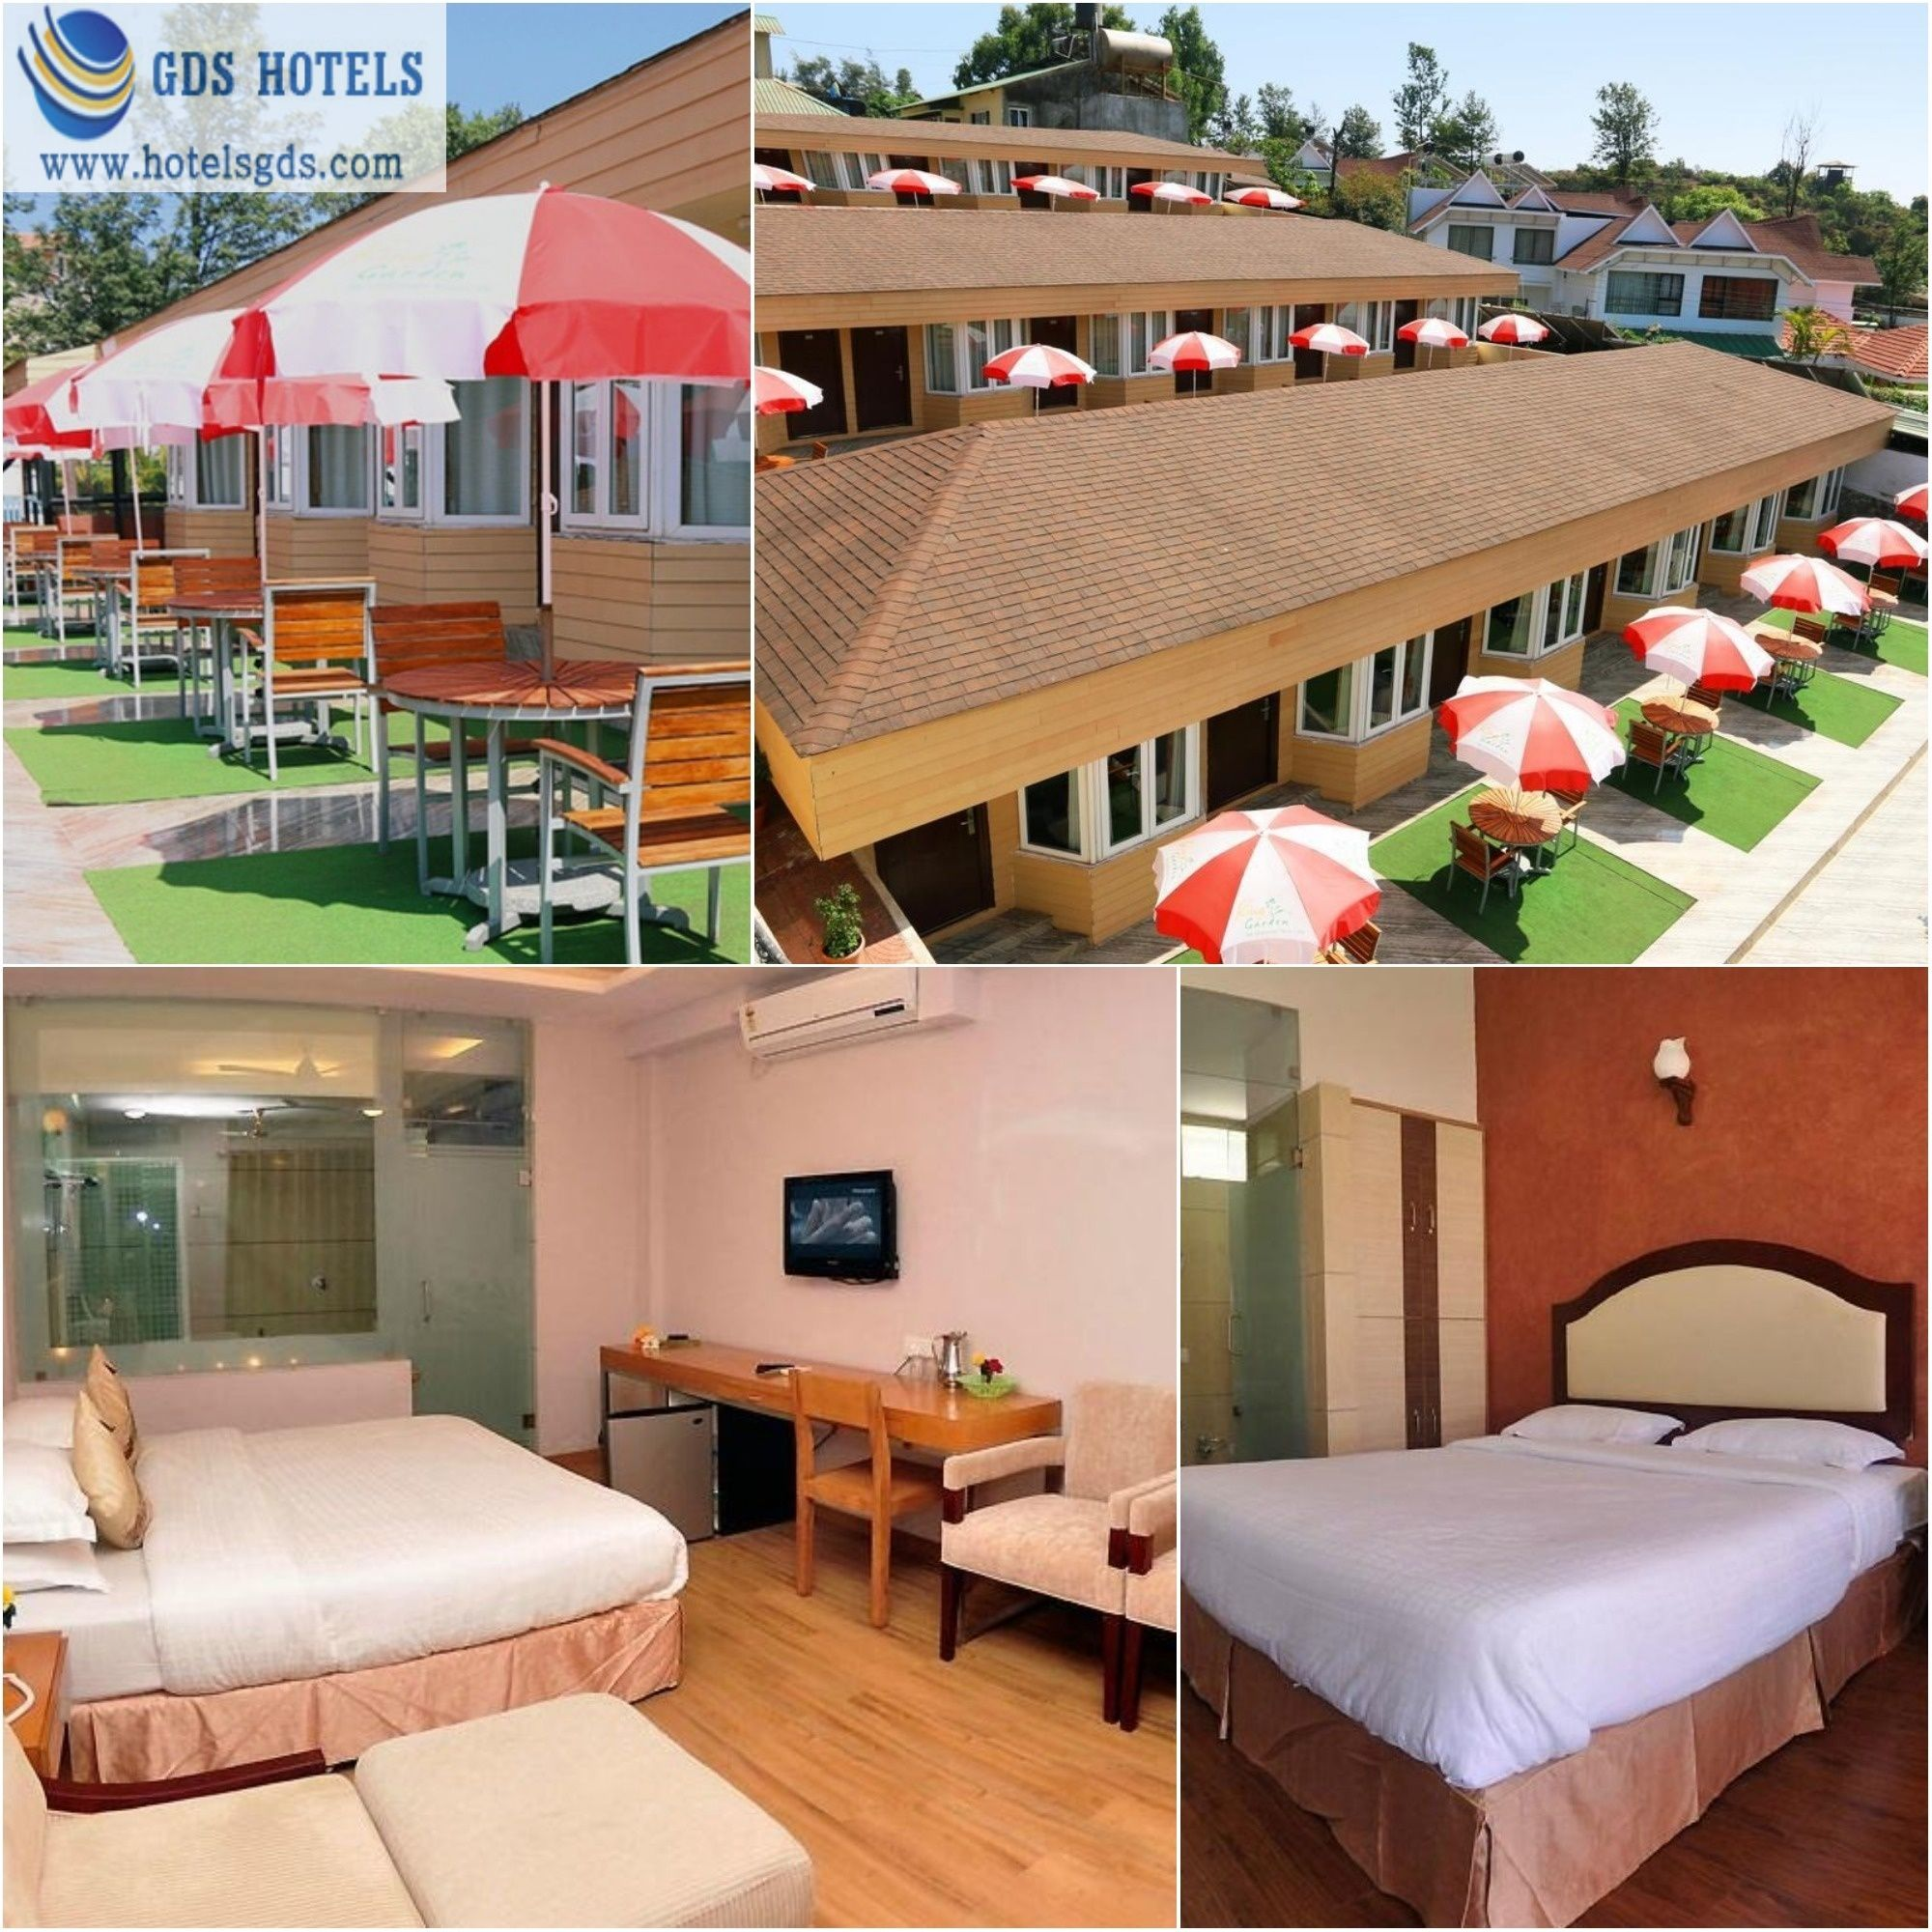 If What You Re Looking For Is A Conveniently Located Hotel In Mahabaleshwar Look No Further Than King Garden Booking Call 91 9711842152 Email